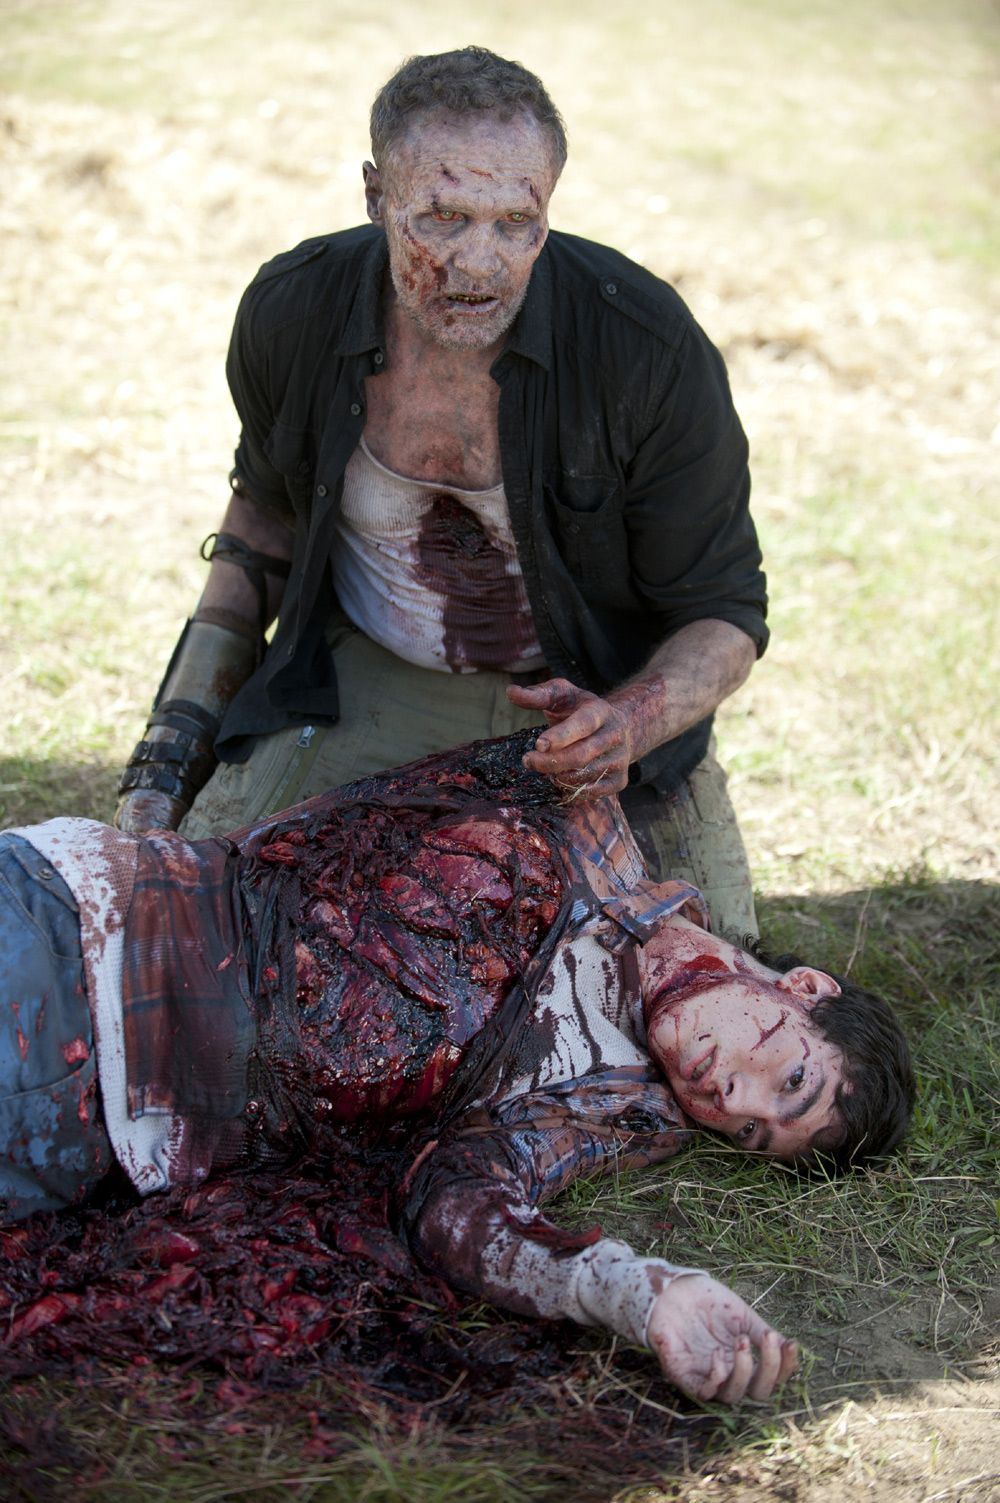 One of the saddest walking dead moments; when Darryl finds his brother as a zombie.